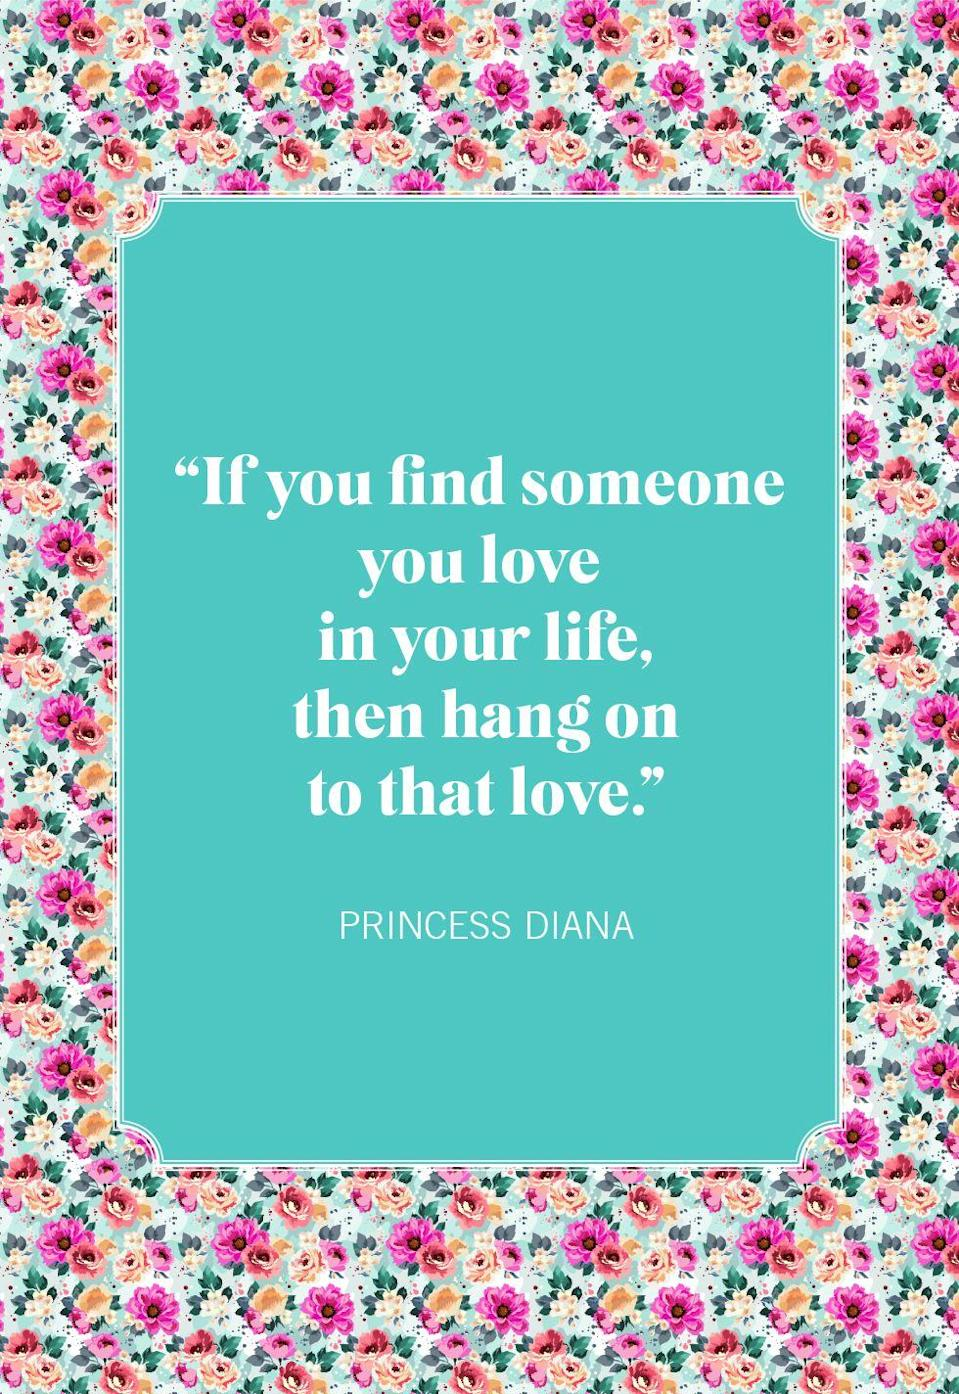 "<p>""If you find someone you love in your life, then hang on to that love.""</p>"